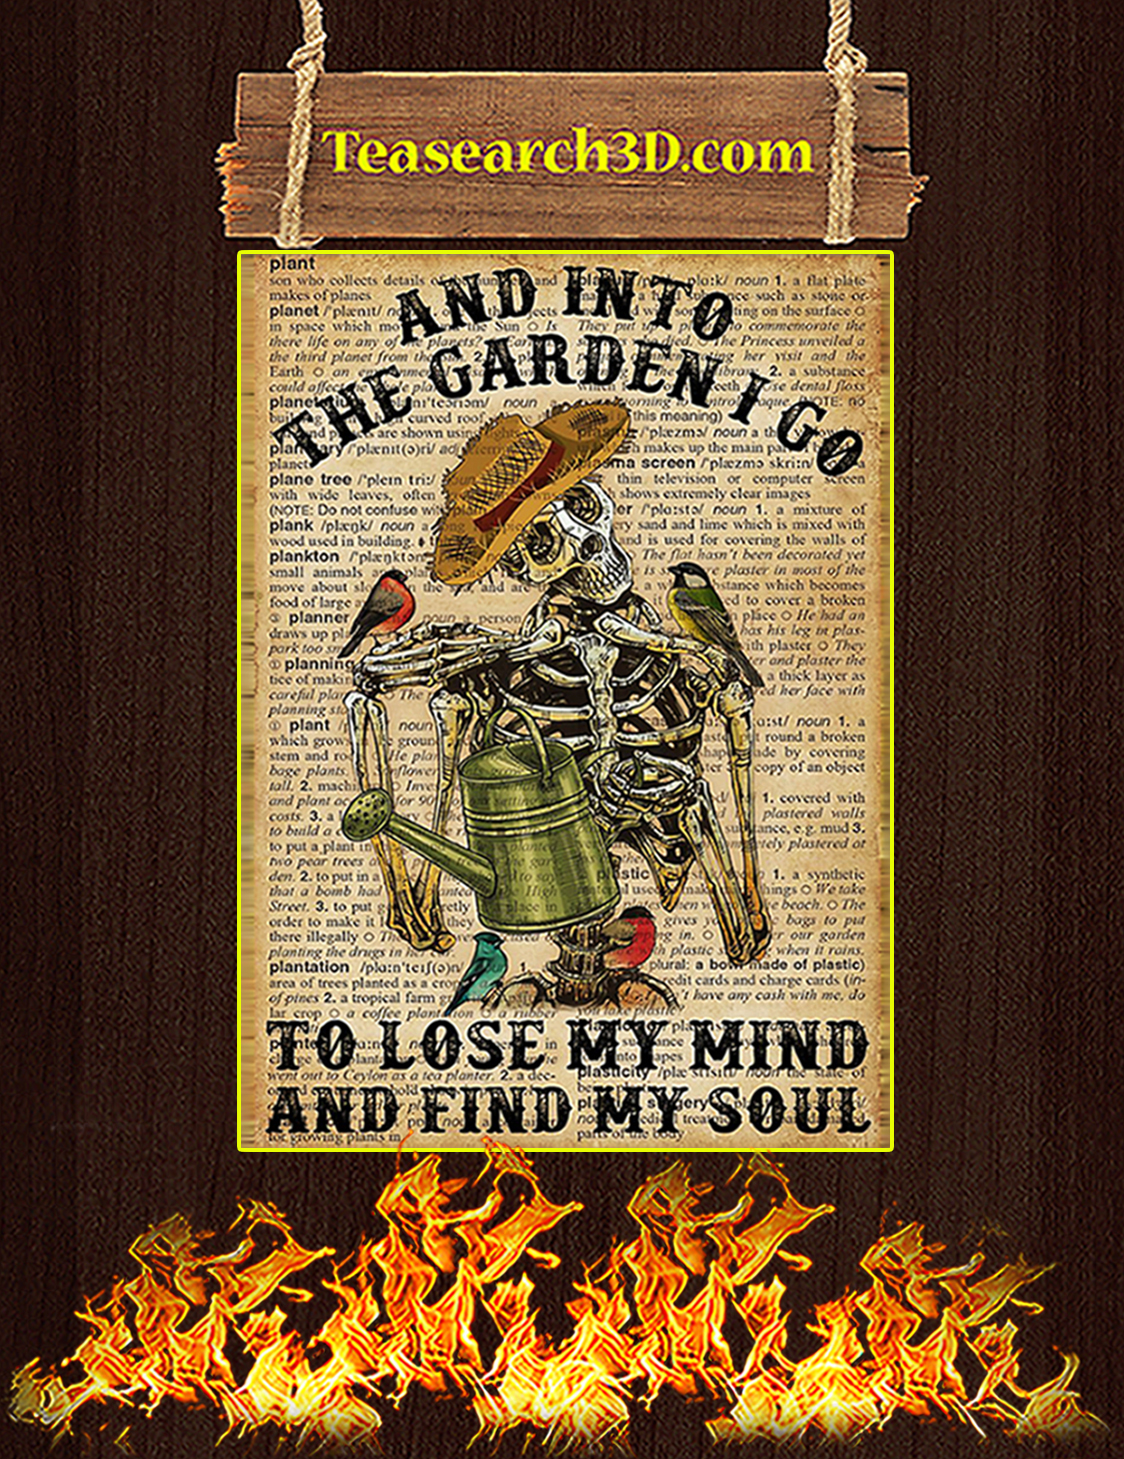 Skeleton And into the garden I go poster A3